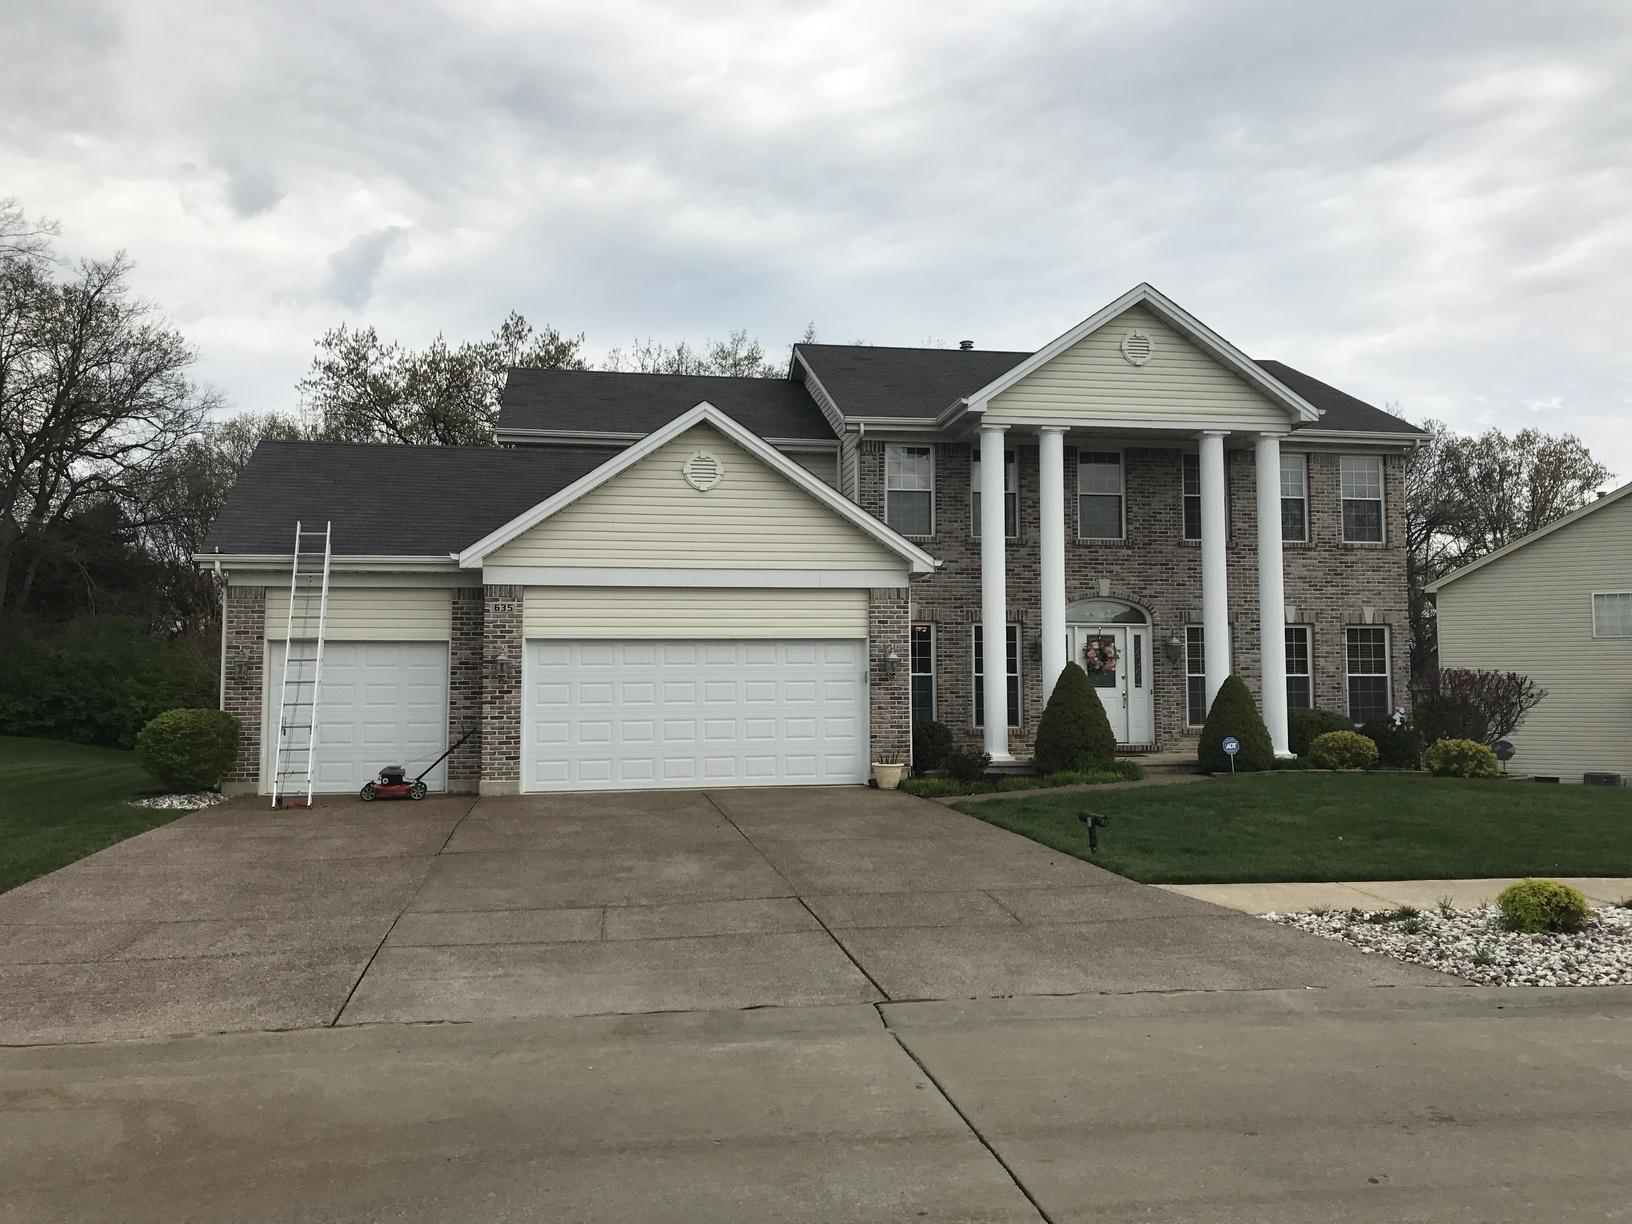 Wentzville MO Two Story Weather Damaged Roof Replacement - Before Photo